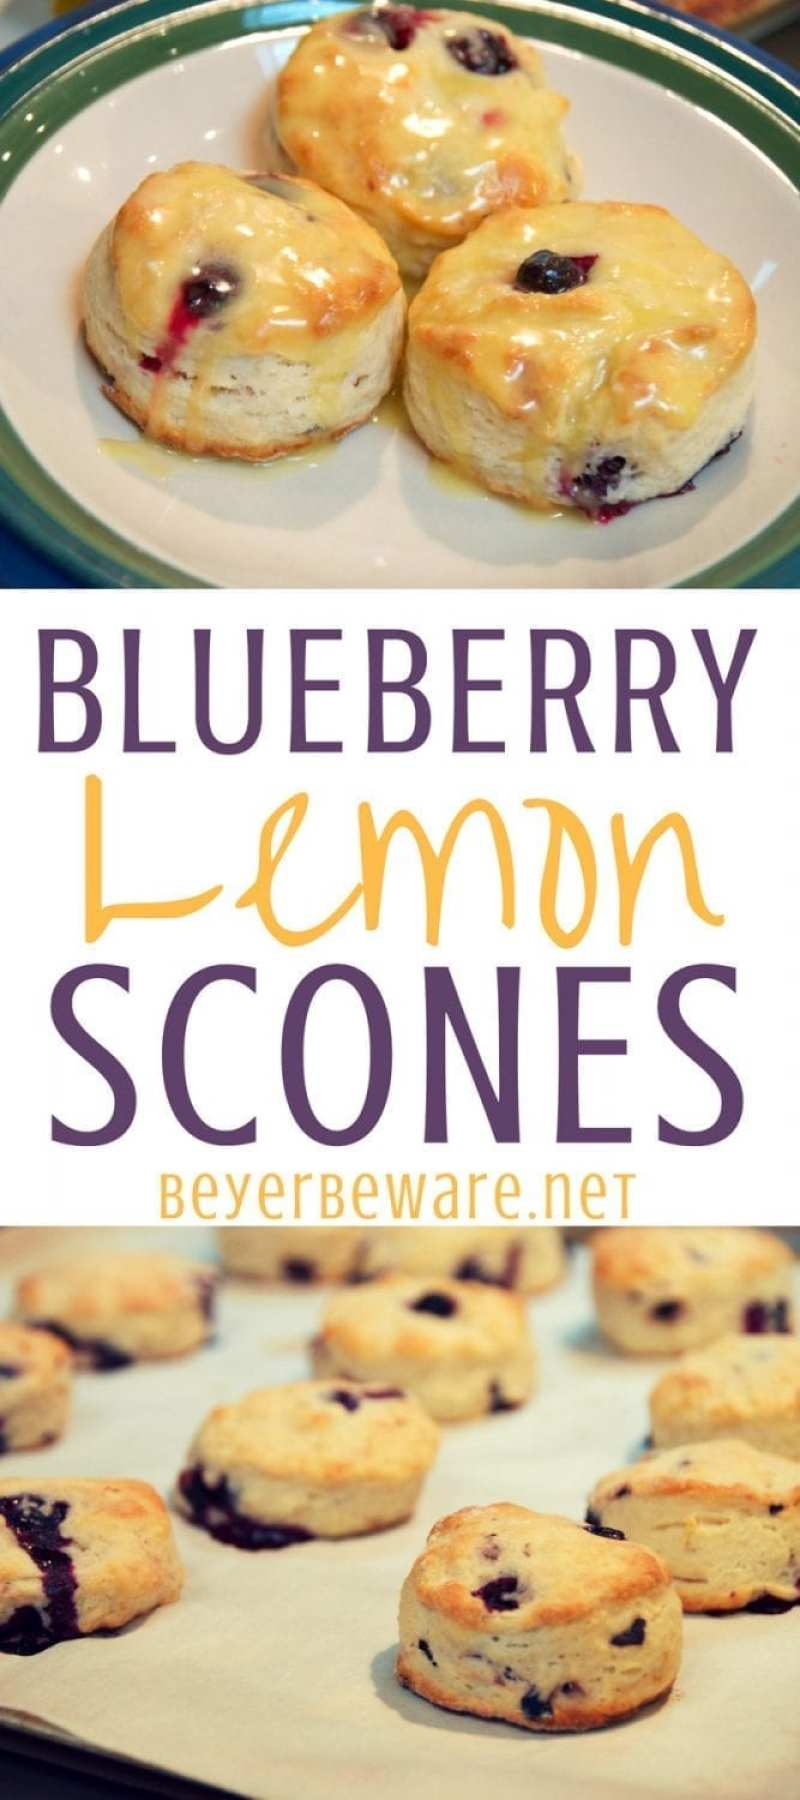 Blueberry Lemon Scones are the perfect spring breakfast or treat with your morning coffee or afternoon tea. These blueberry scones are flaky and flavorful with the hint of lemon flavor.